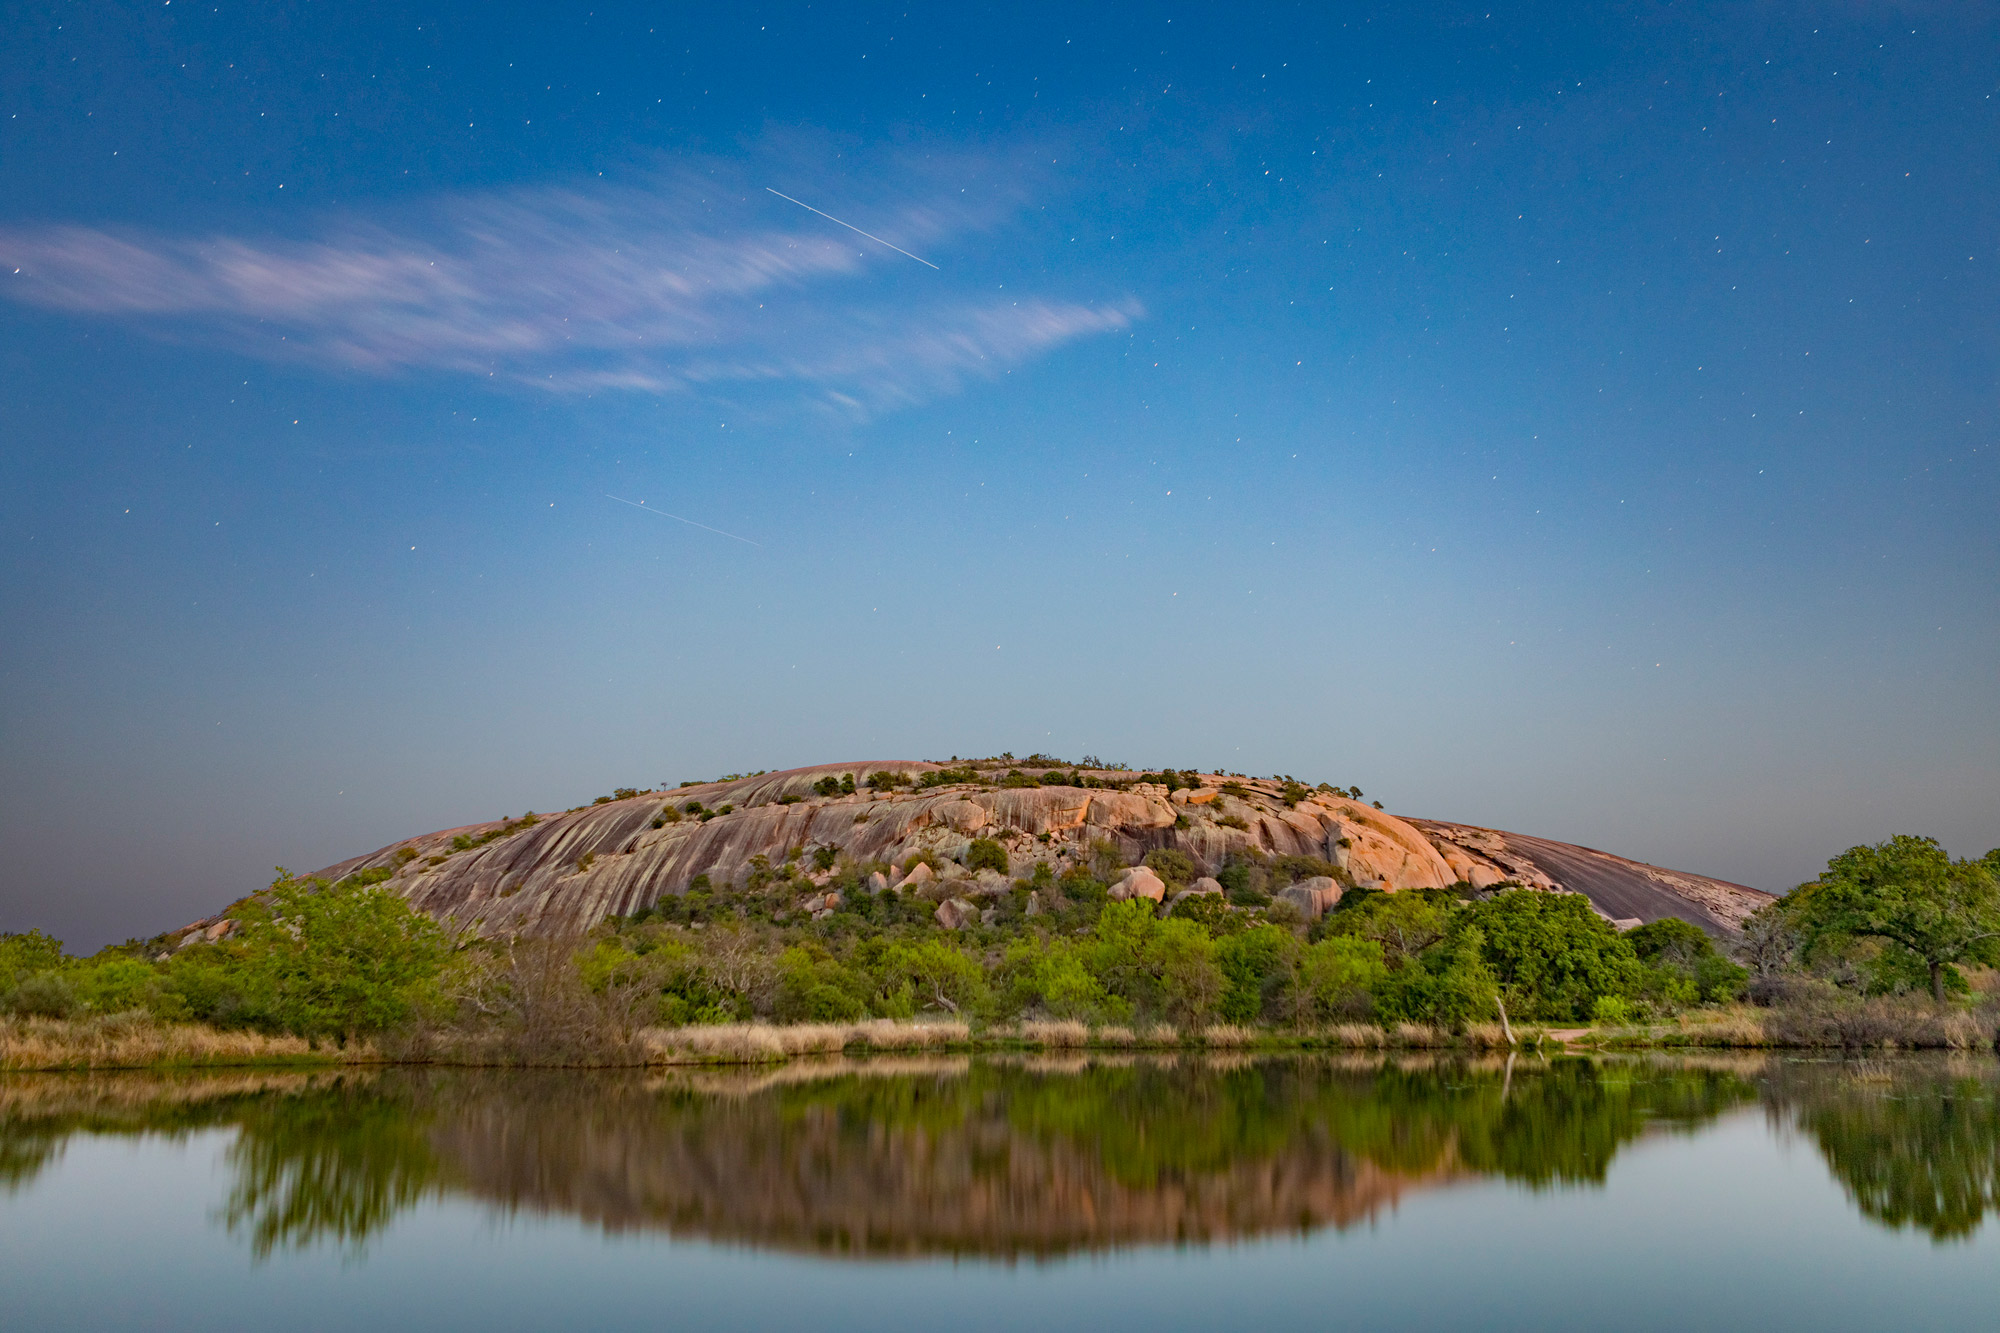 Enchanted Rock and stars at dusk, Texas